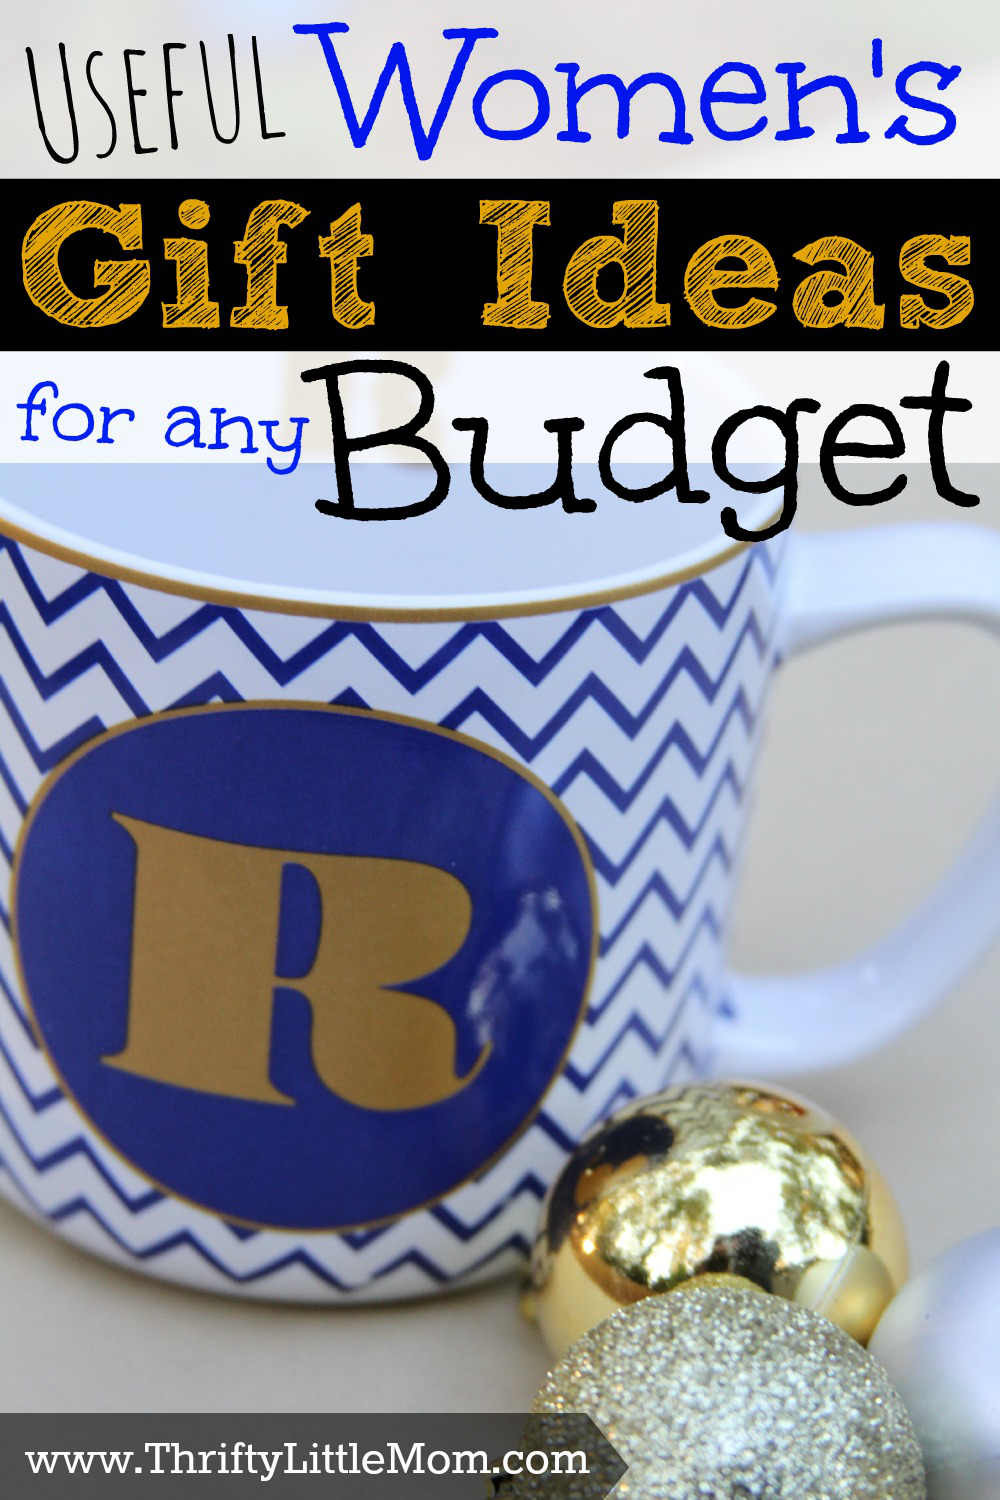 Best ideas about Useful Gift Ideas . Save or Pin Useful Women s Gift Ideas For Any Bud Now.